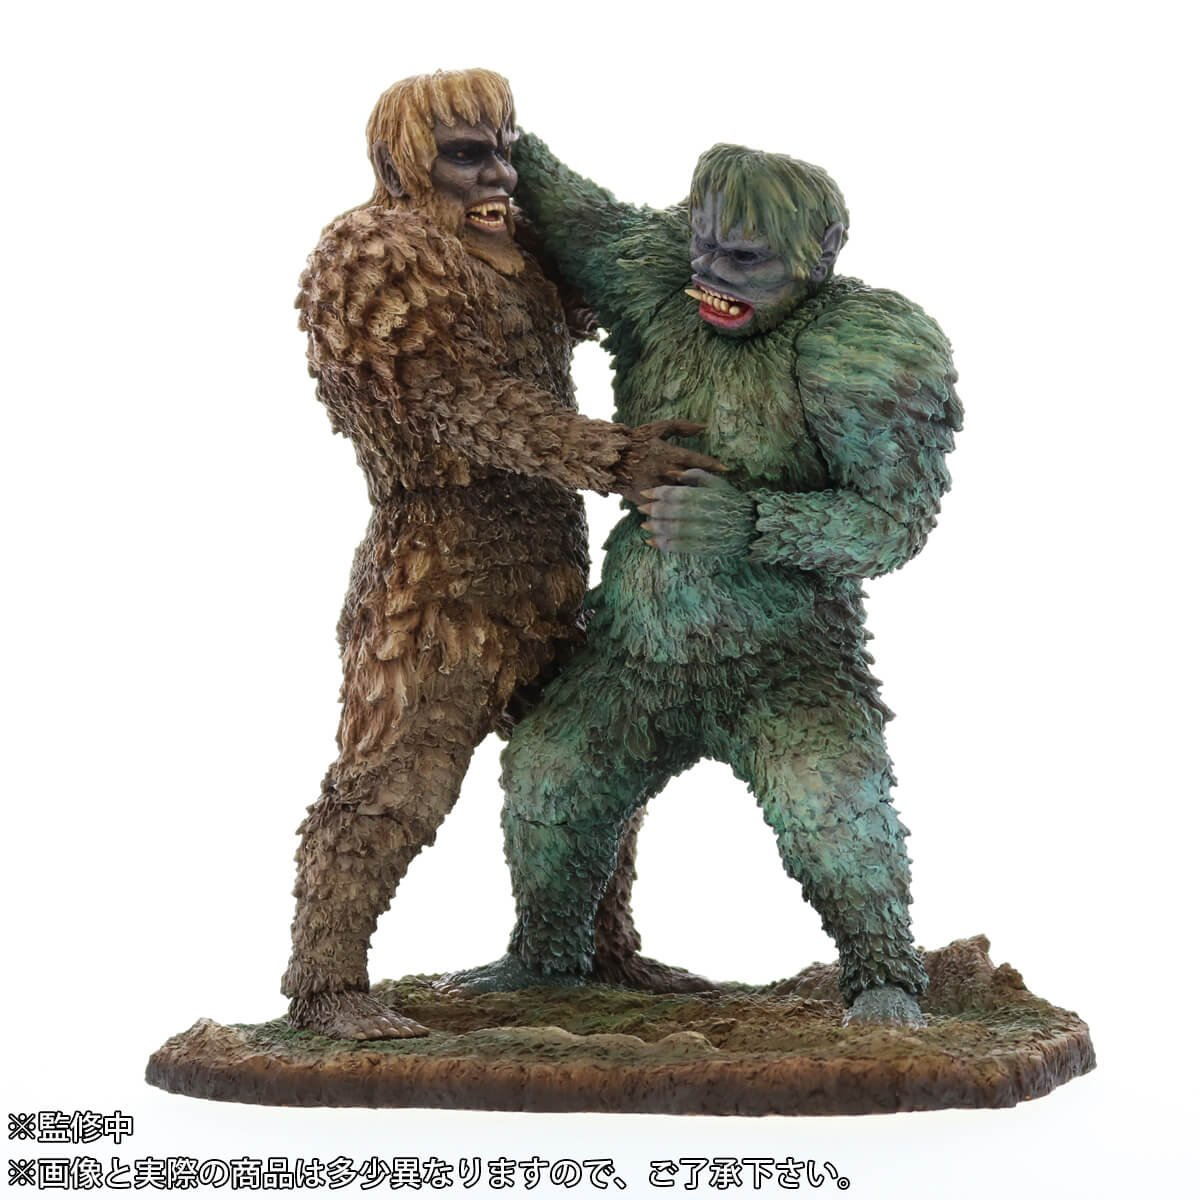 Toho Large Monster Series Sanda vs. Guyra Shonen Rick Limited Edition 3